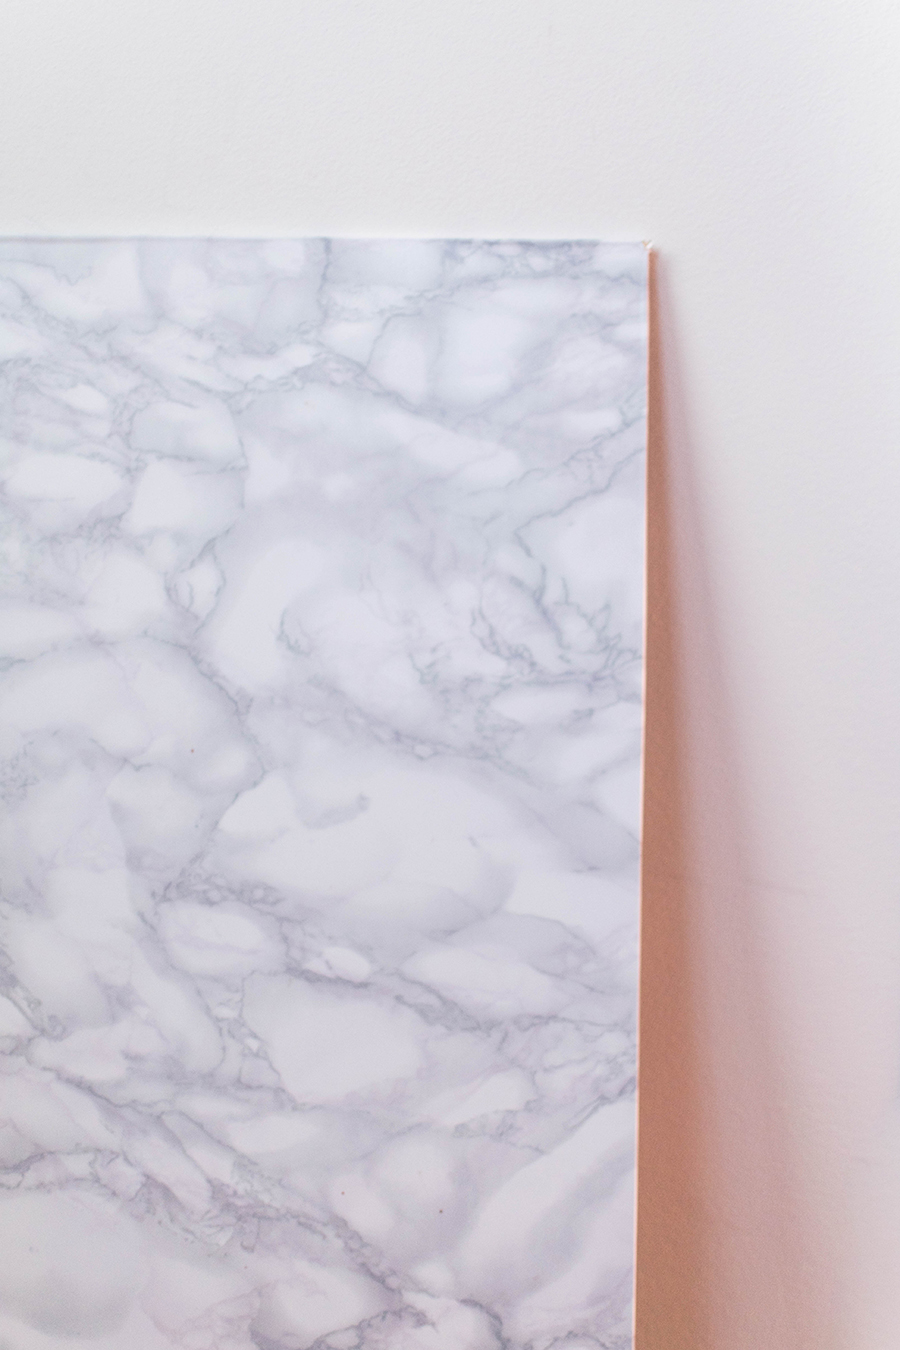 DIY simple and quick marble photography background